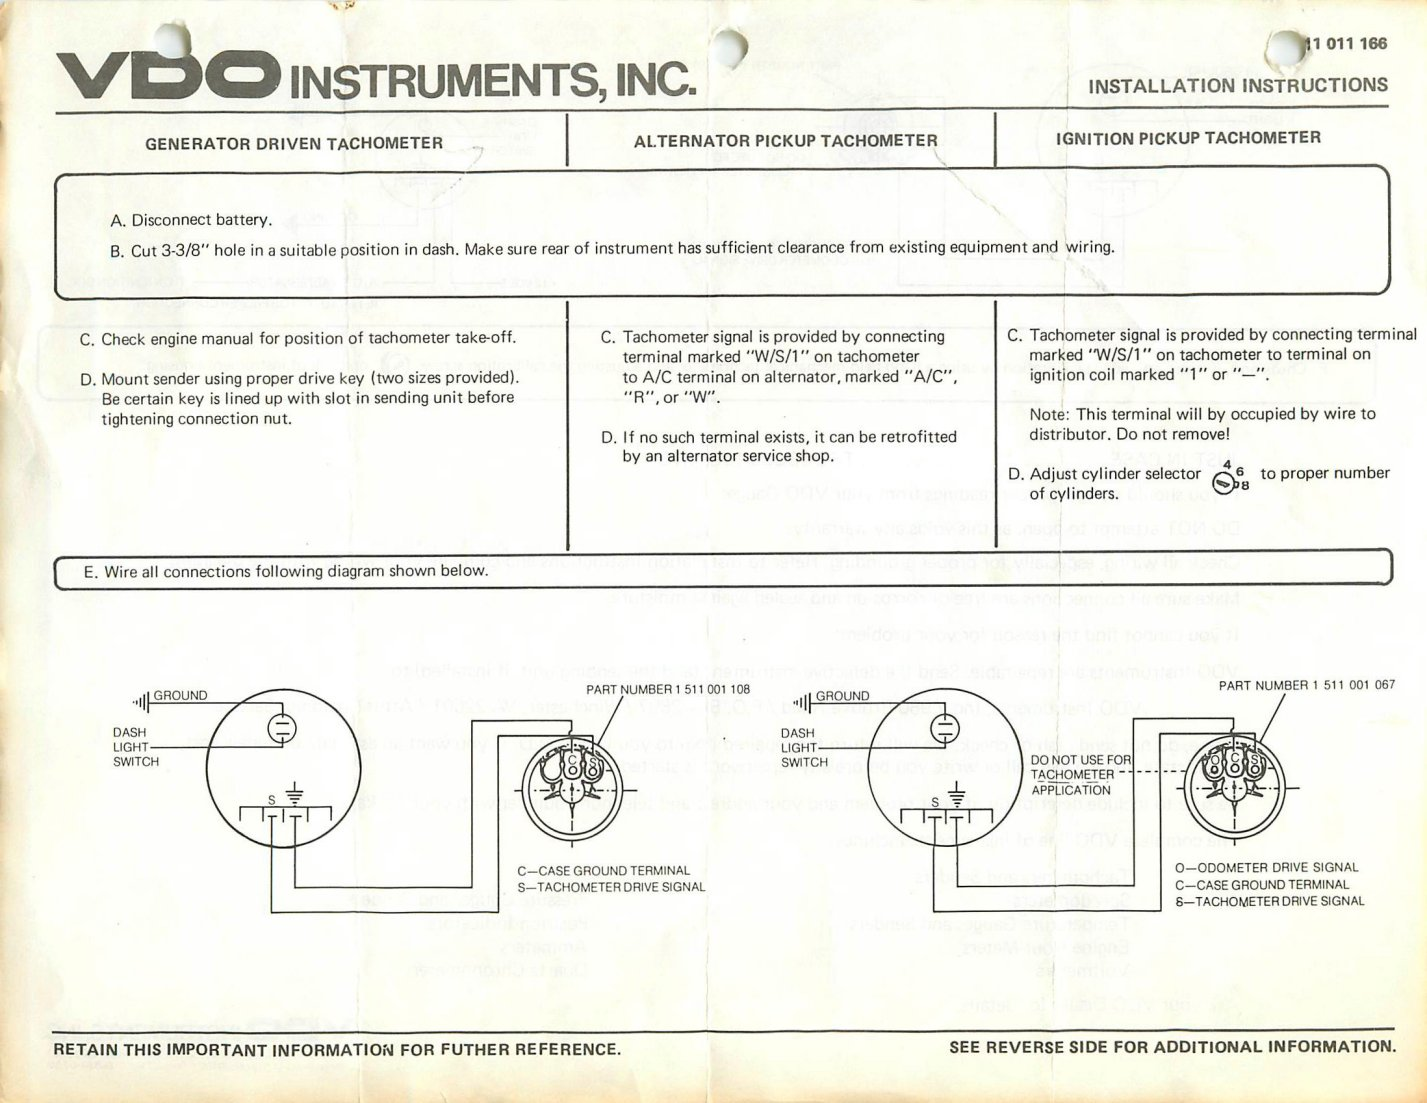 vdo fuel sender instructions